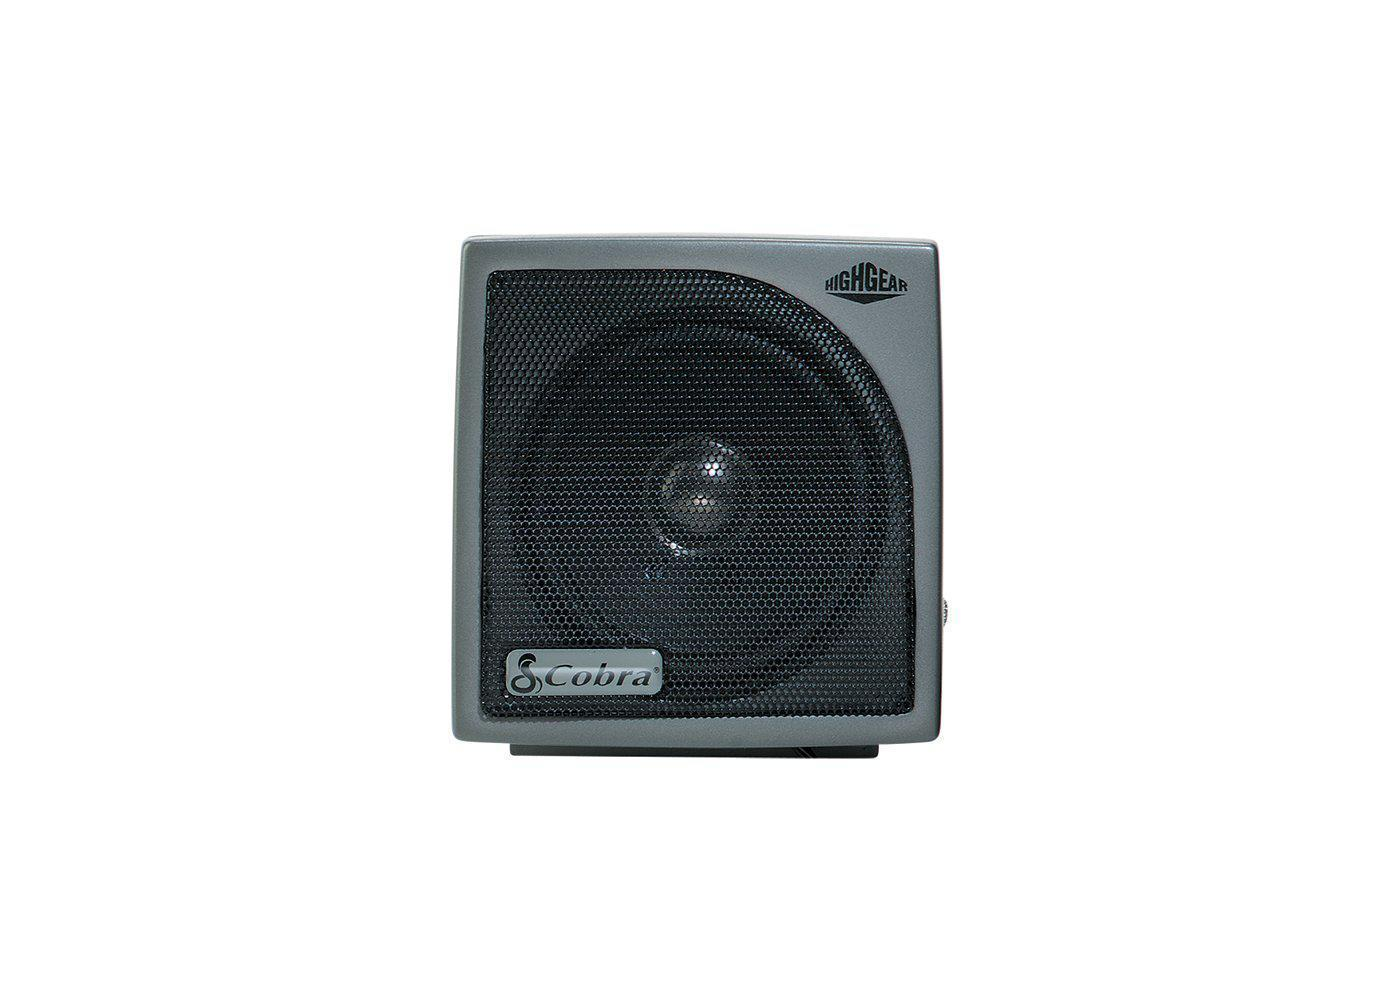 HG S100 - Dynamic External CB Speaker - cobra.com